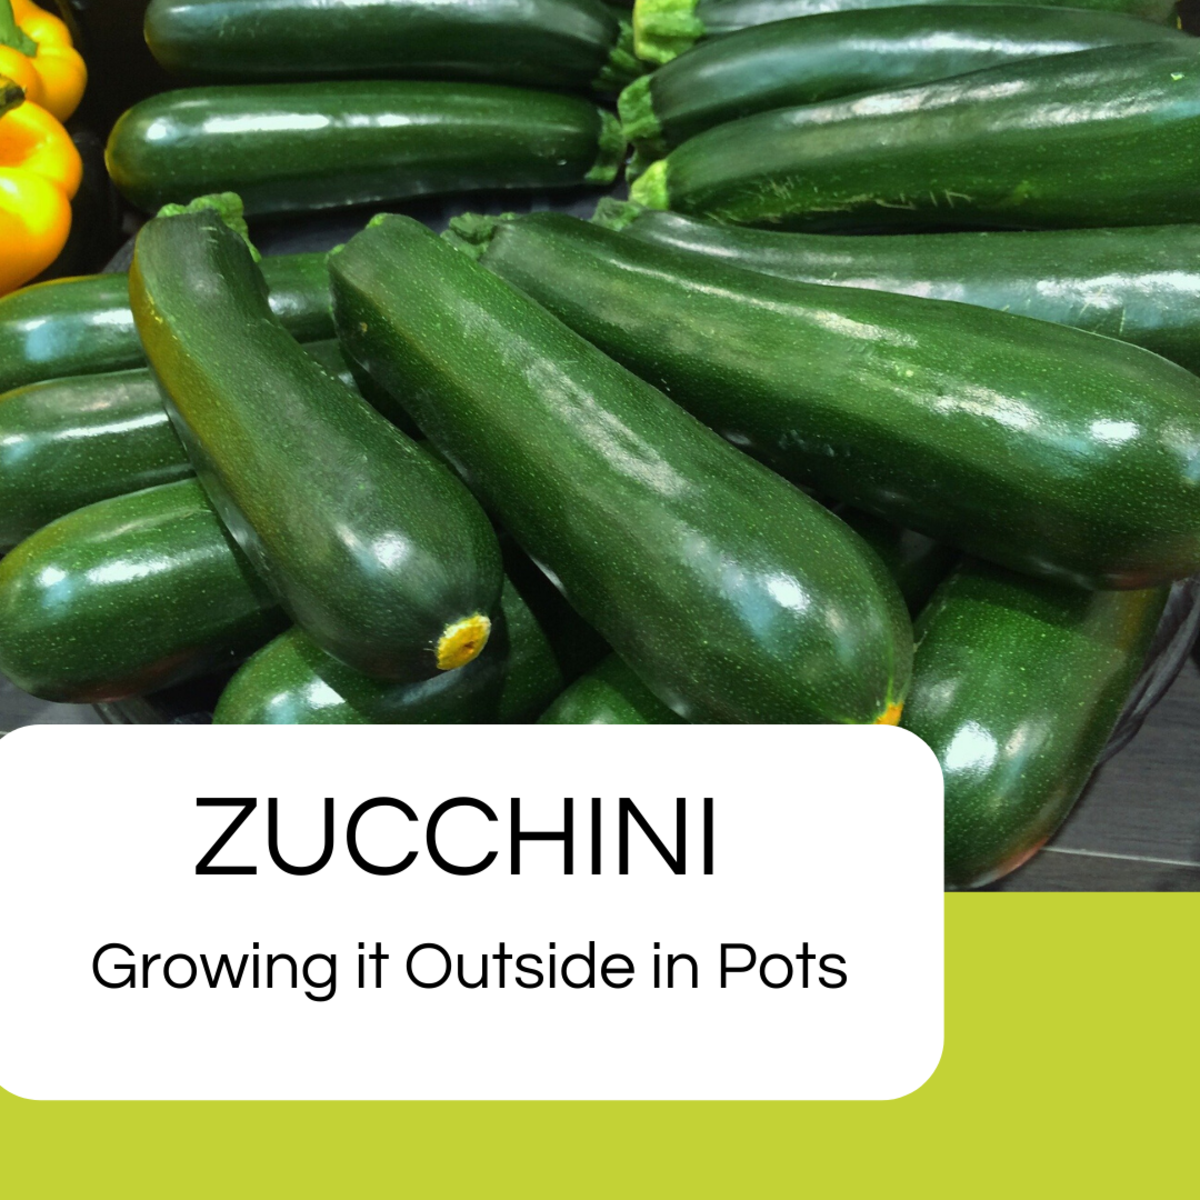 Growing Zucchini Outside in Pots